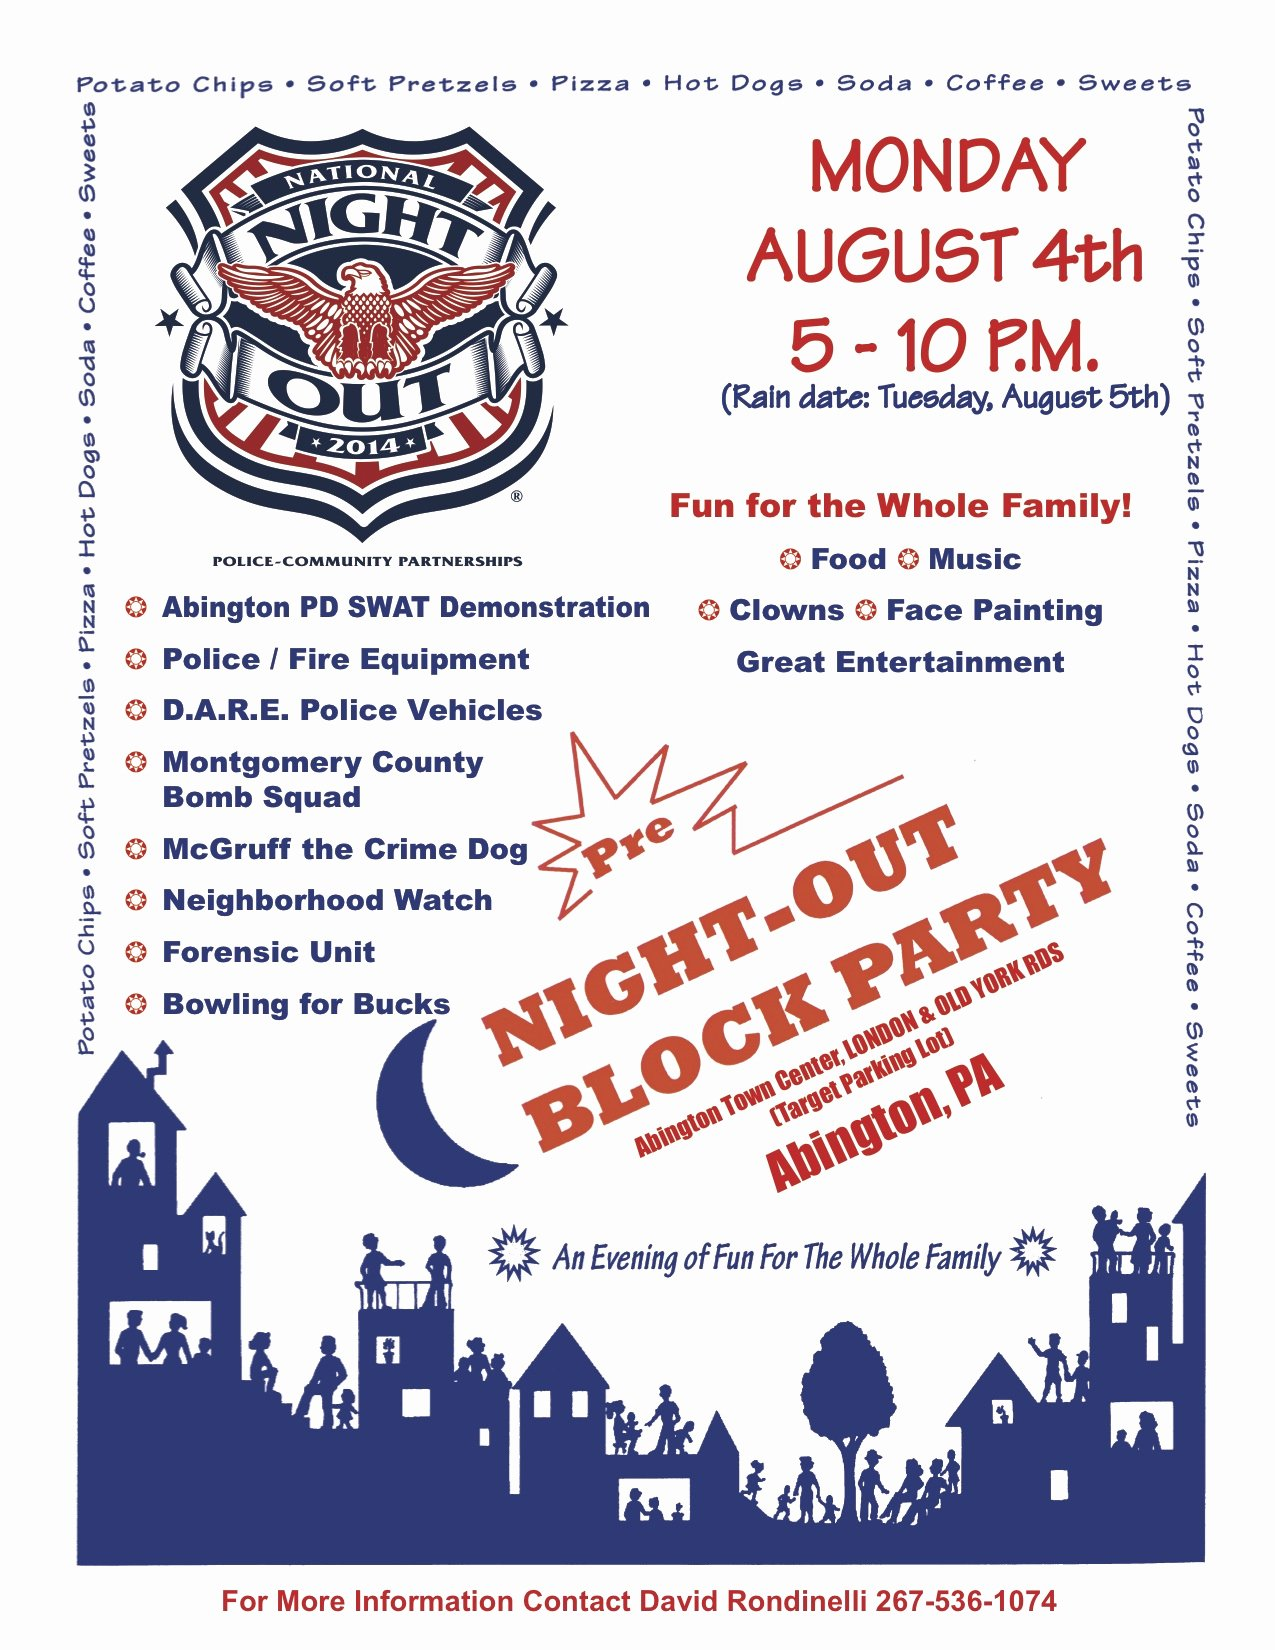 Block Party Flyer Template Free Unique Pre National Night Out Block Party